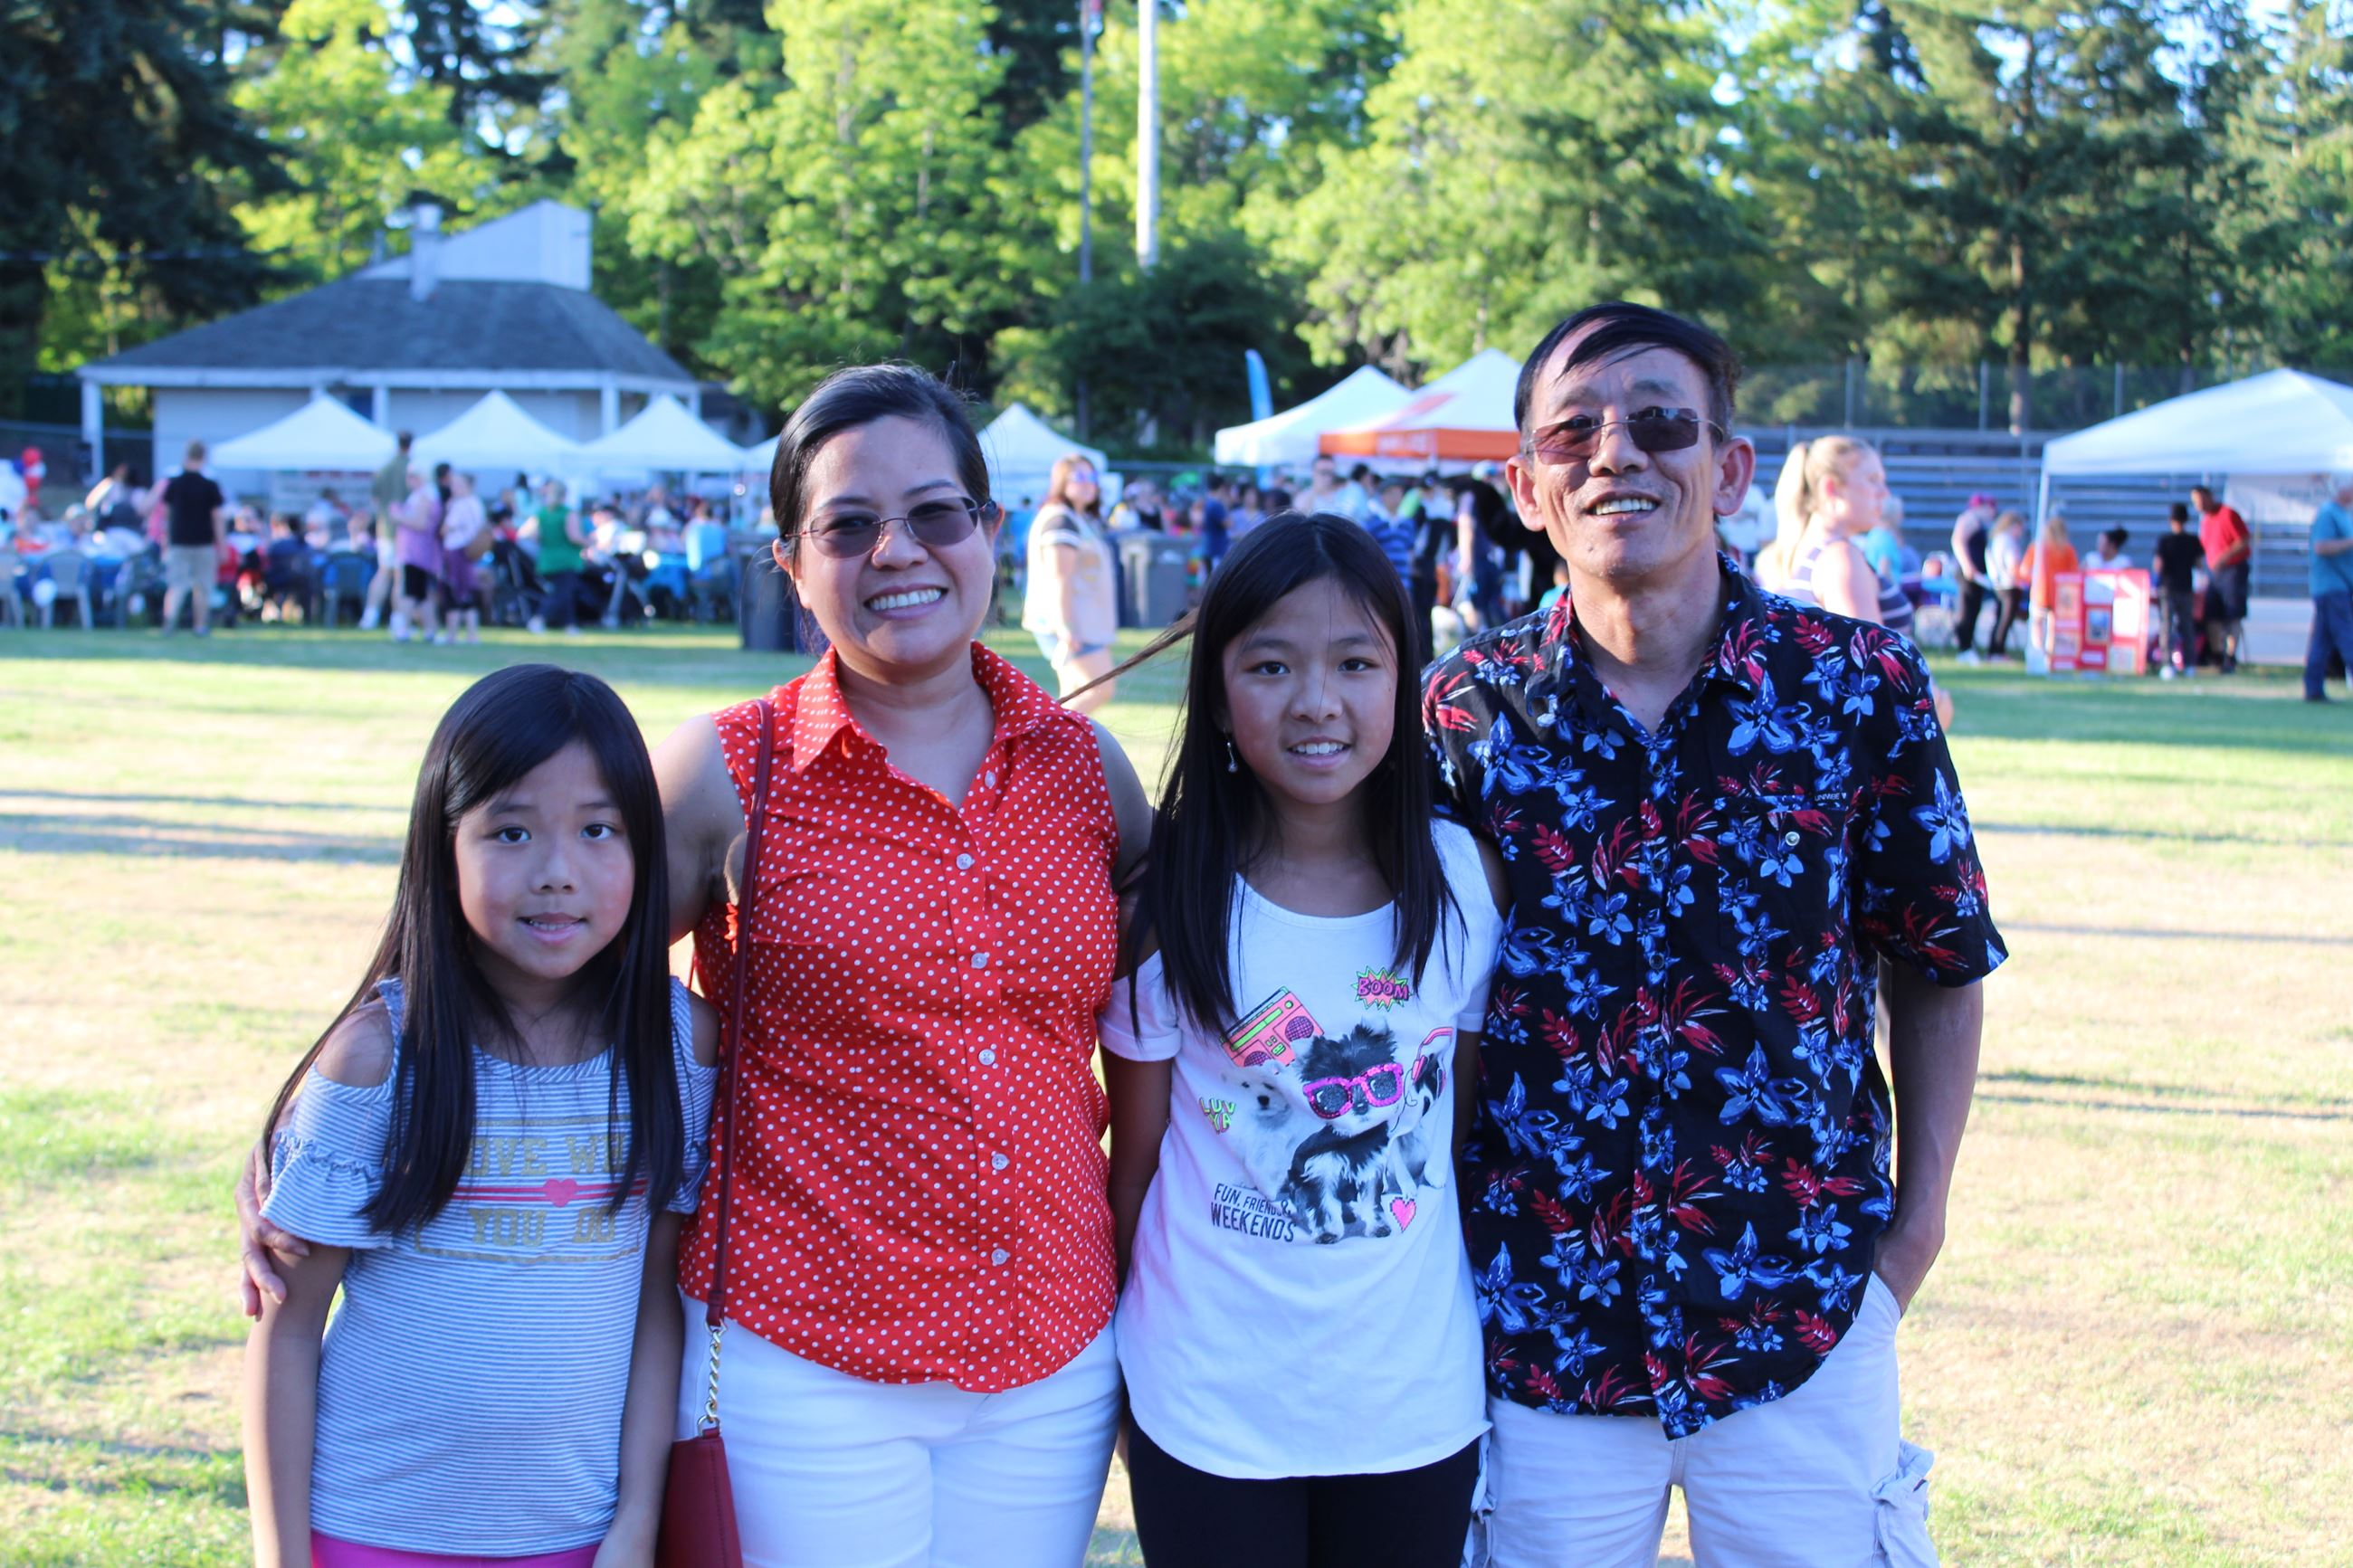 Family at city event